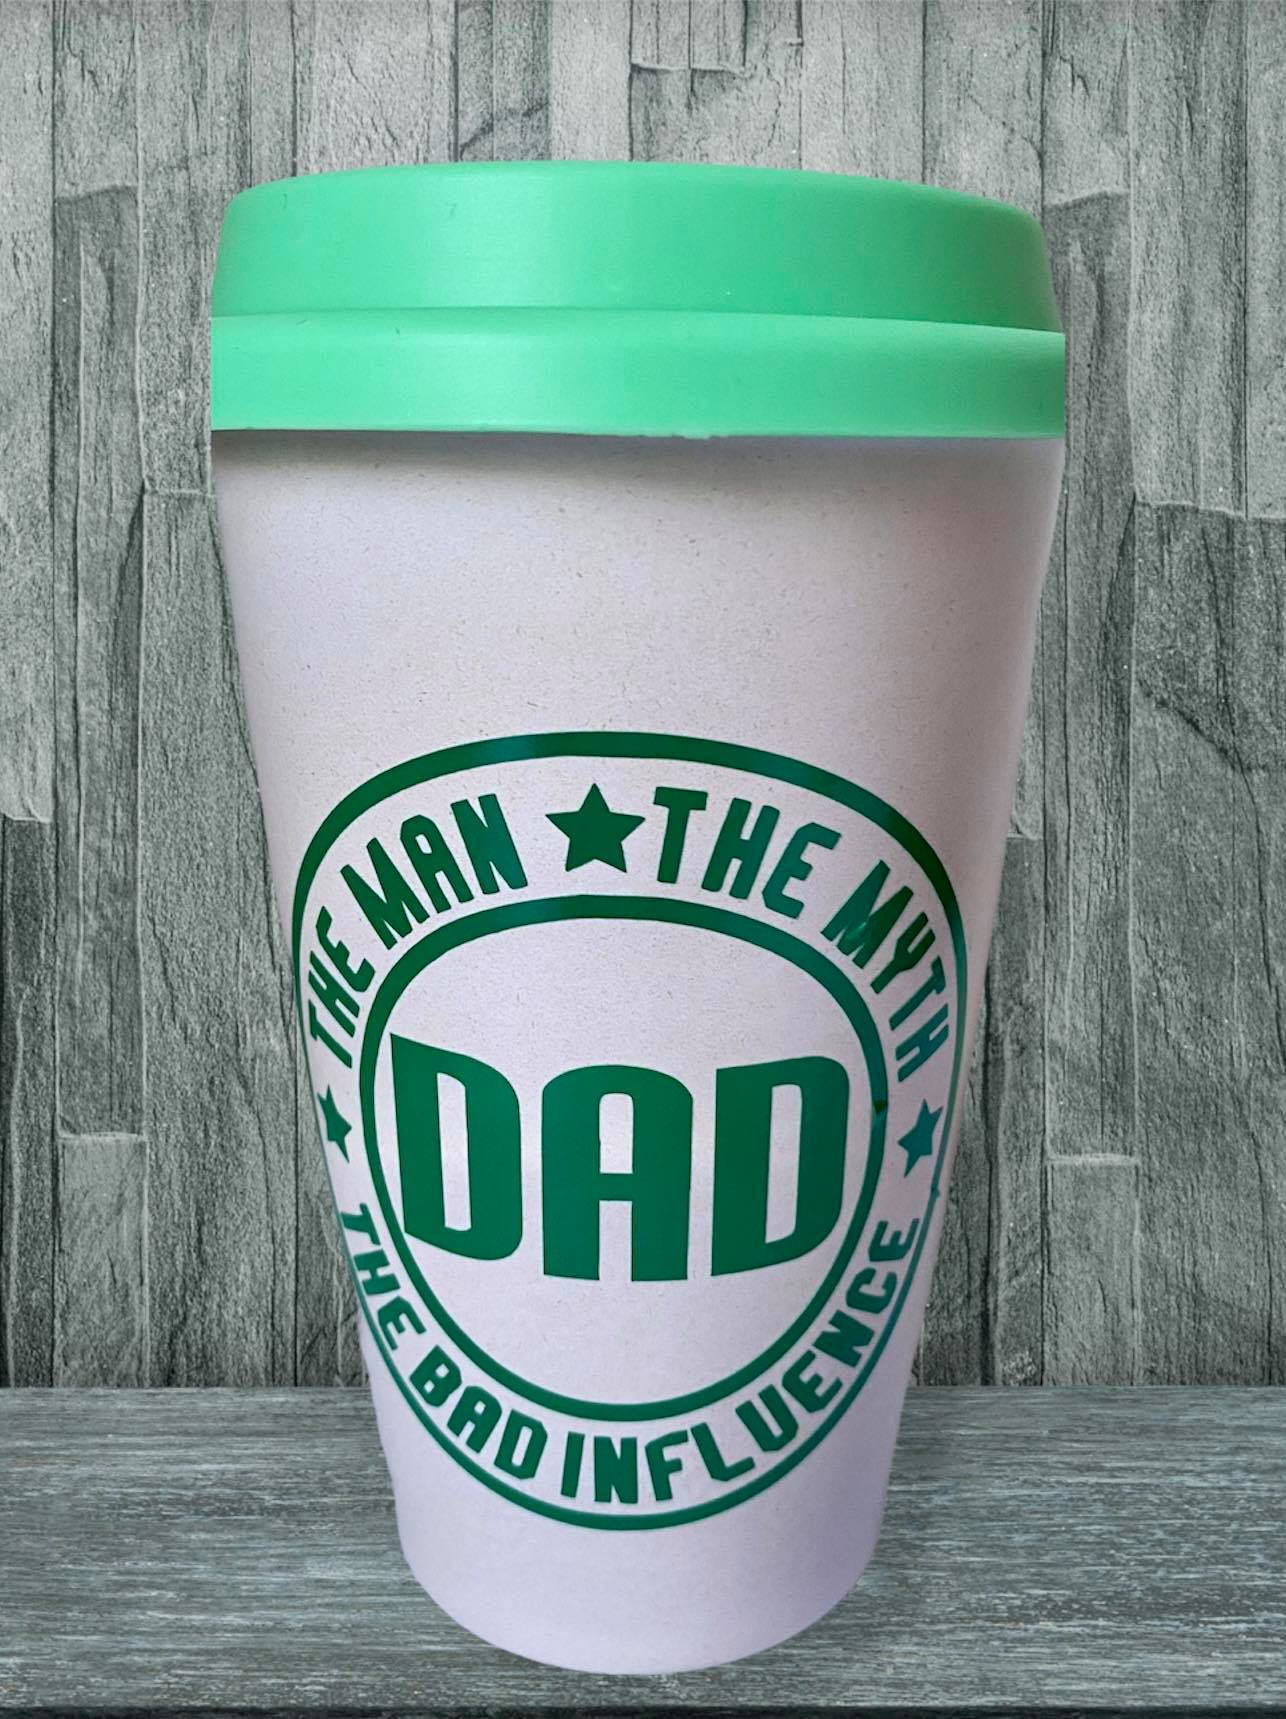 """ The Man The Myth The Legend Dad"" Travel Mug."